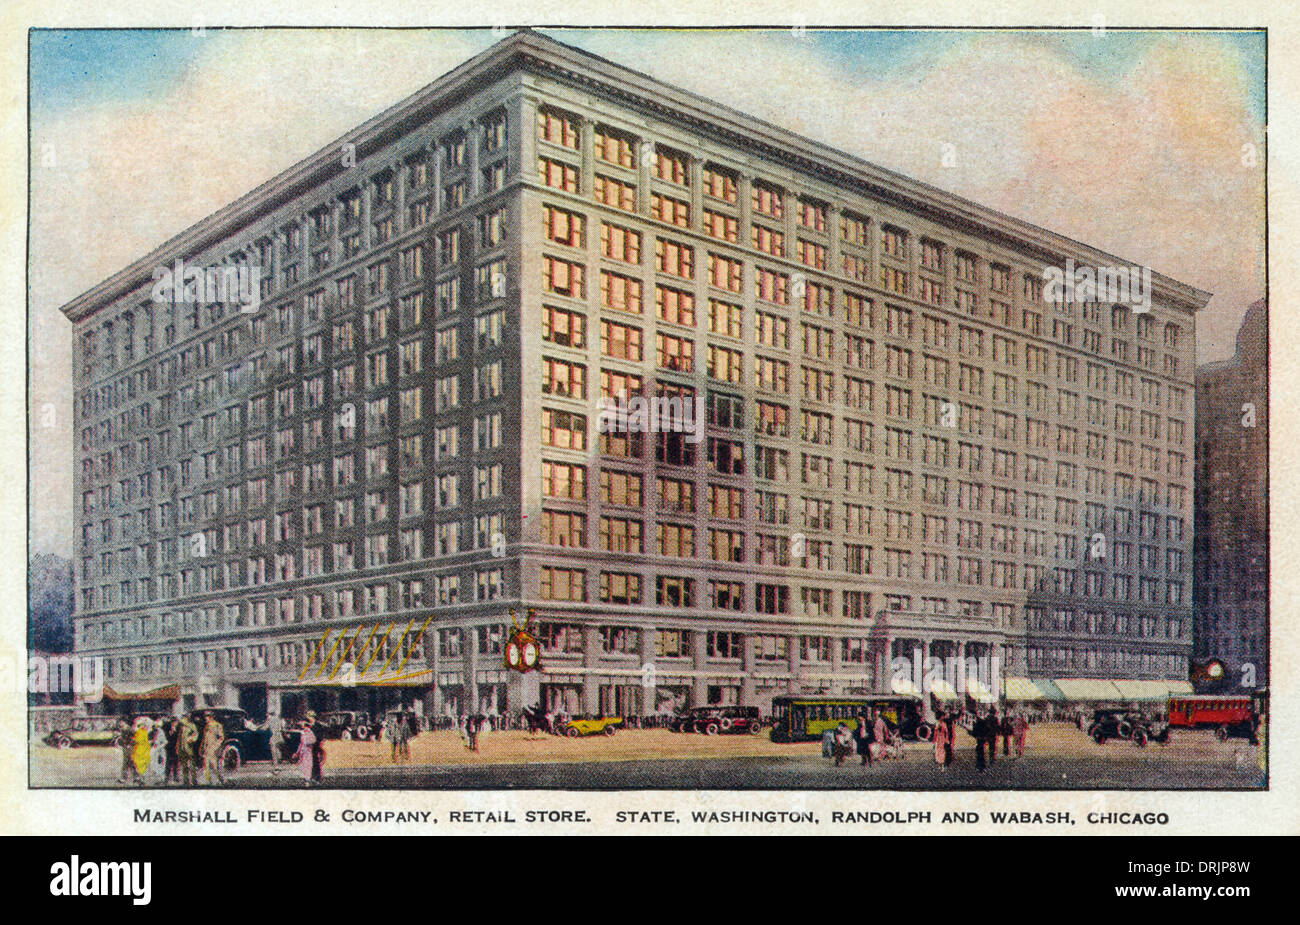 Marshall Field & Company, department store. - Stock Image